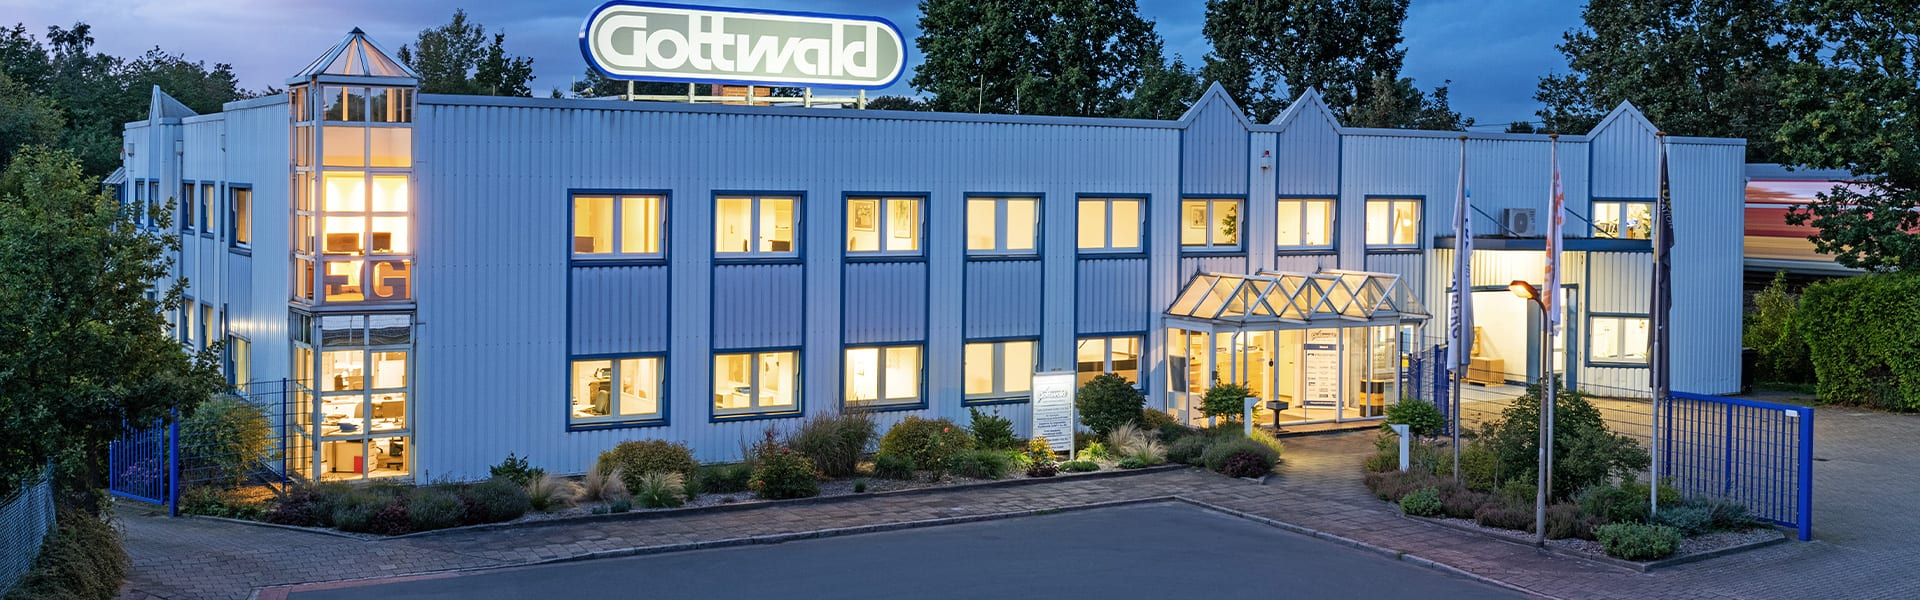 The Gottwald group